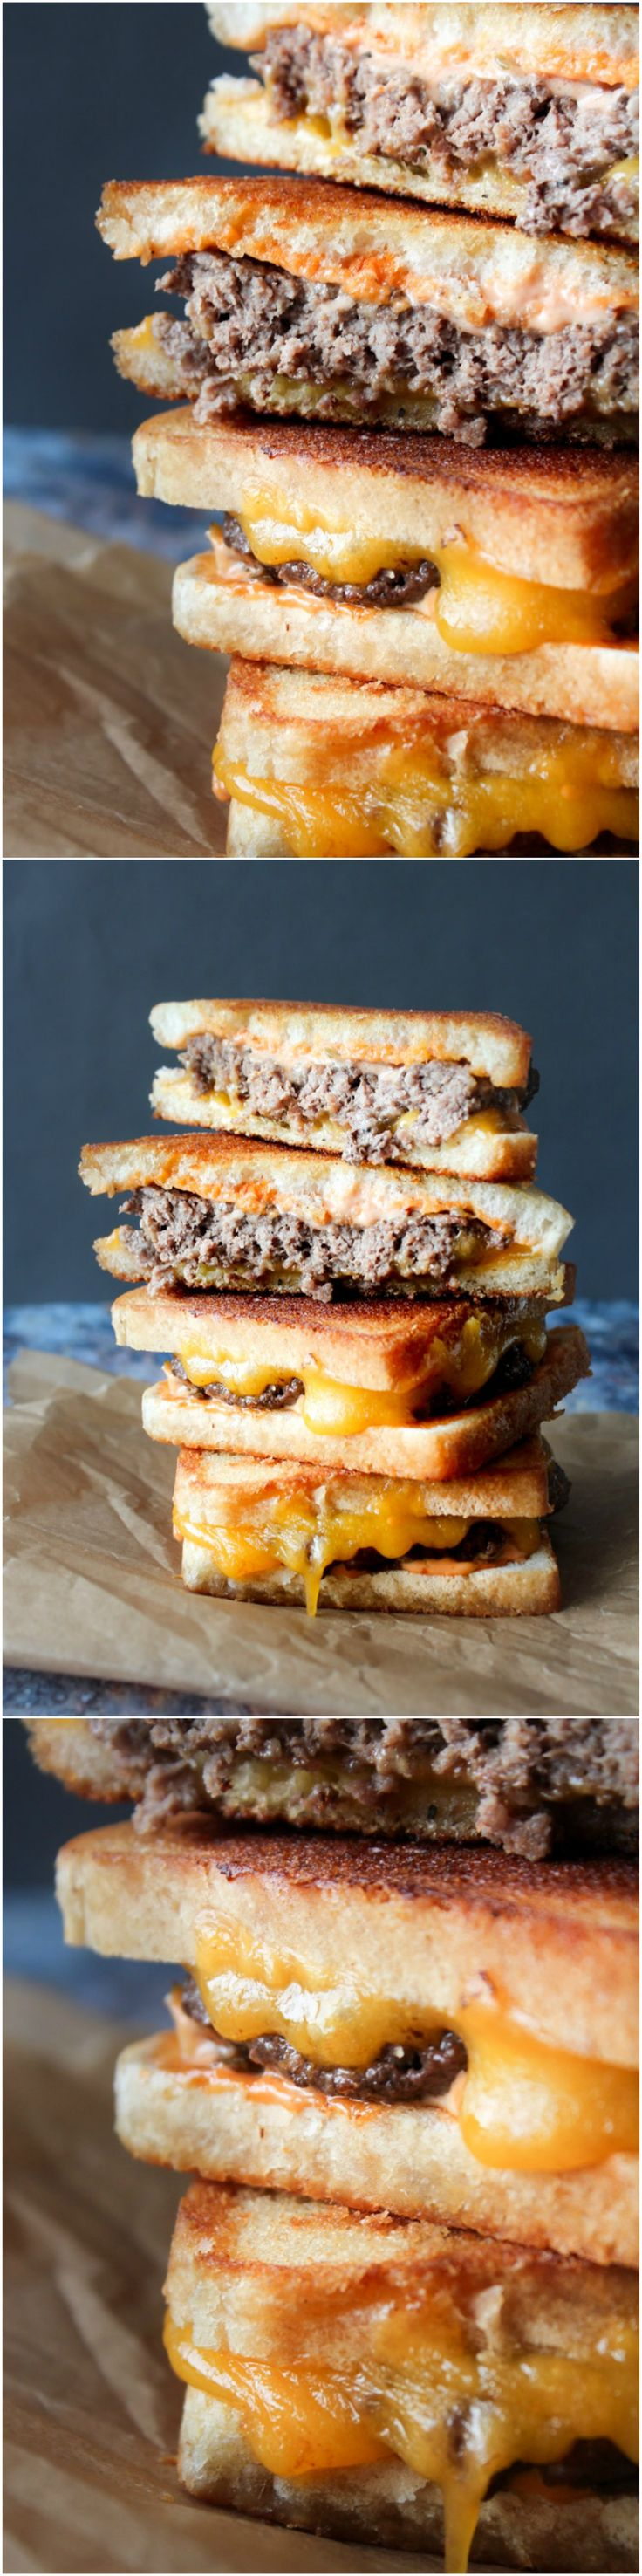 Patty Melts - Grilled Cheese - Burger - Homemade Sauce - Cheese - Beef - Dinner recipe - Lunch Recipe